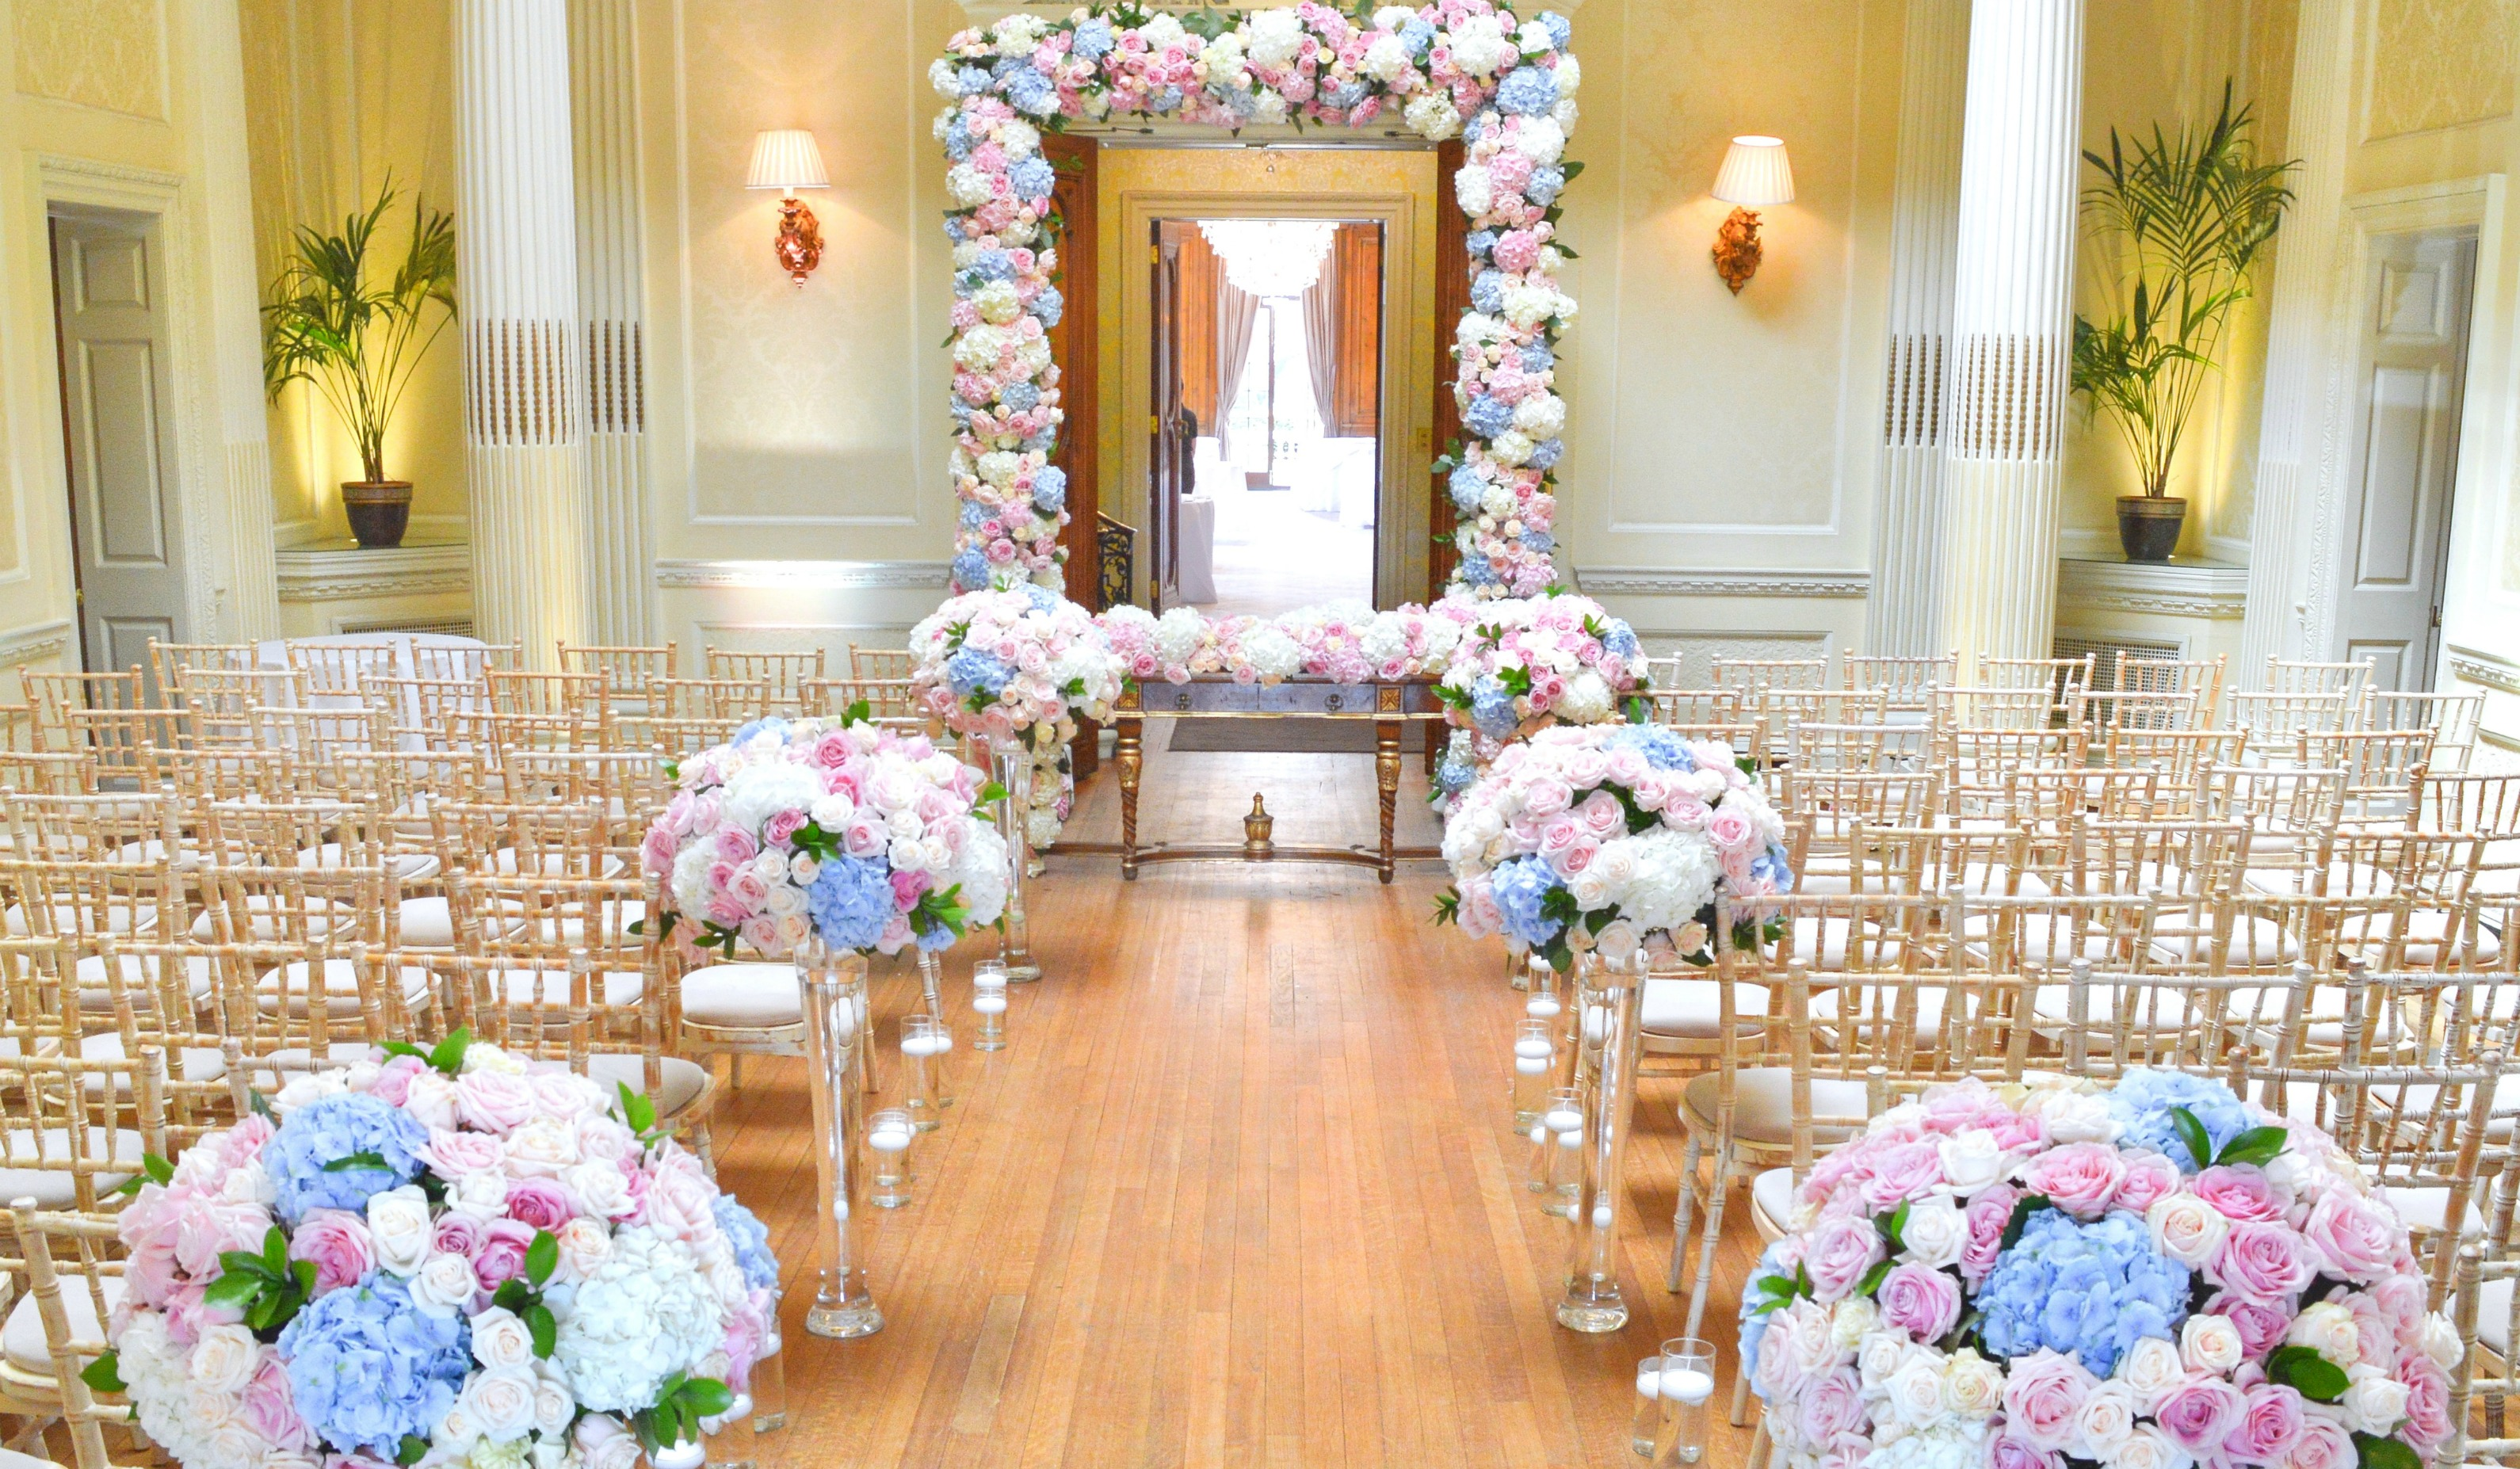 Dusty blue and pink wedding flowers arch registrar table head toptable floral garland wedding ceremony aisle Cherie Kelly cakes London Hedsor House Wedding